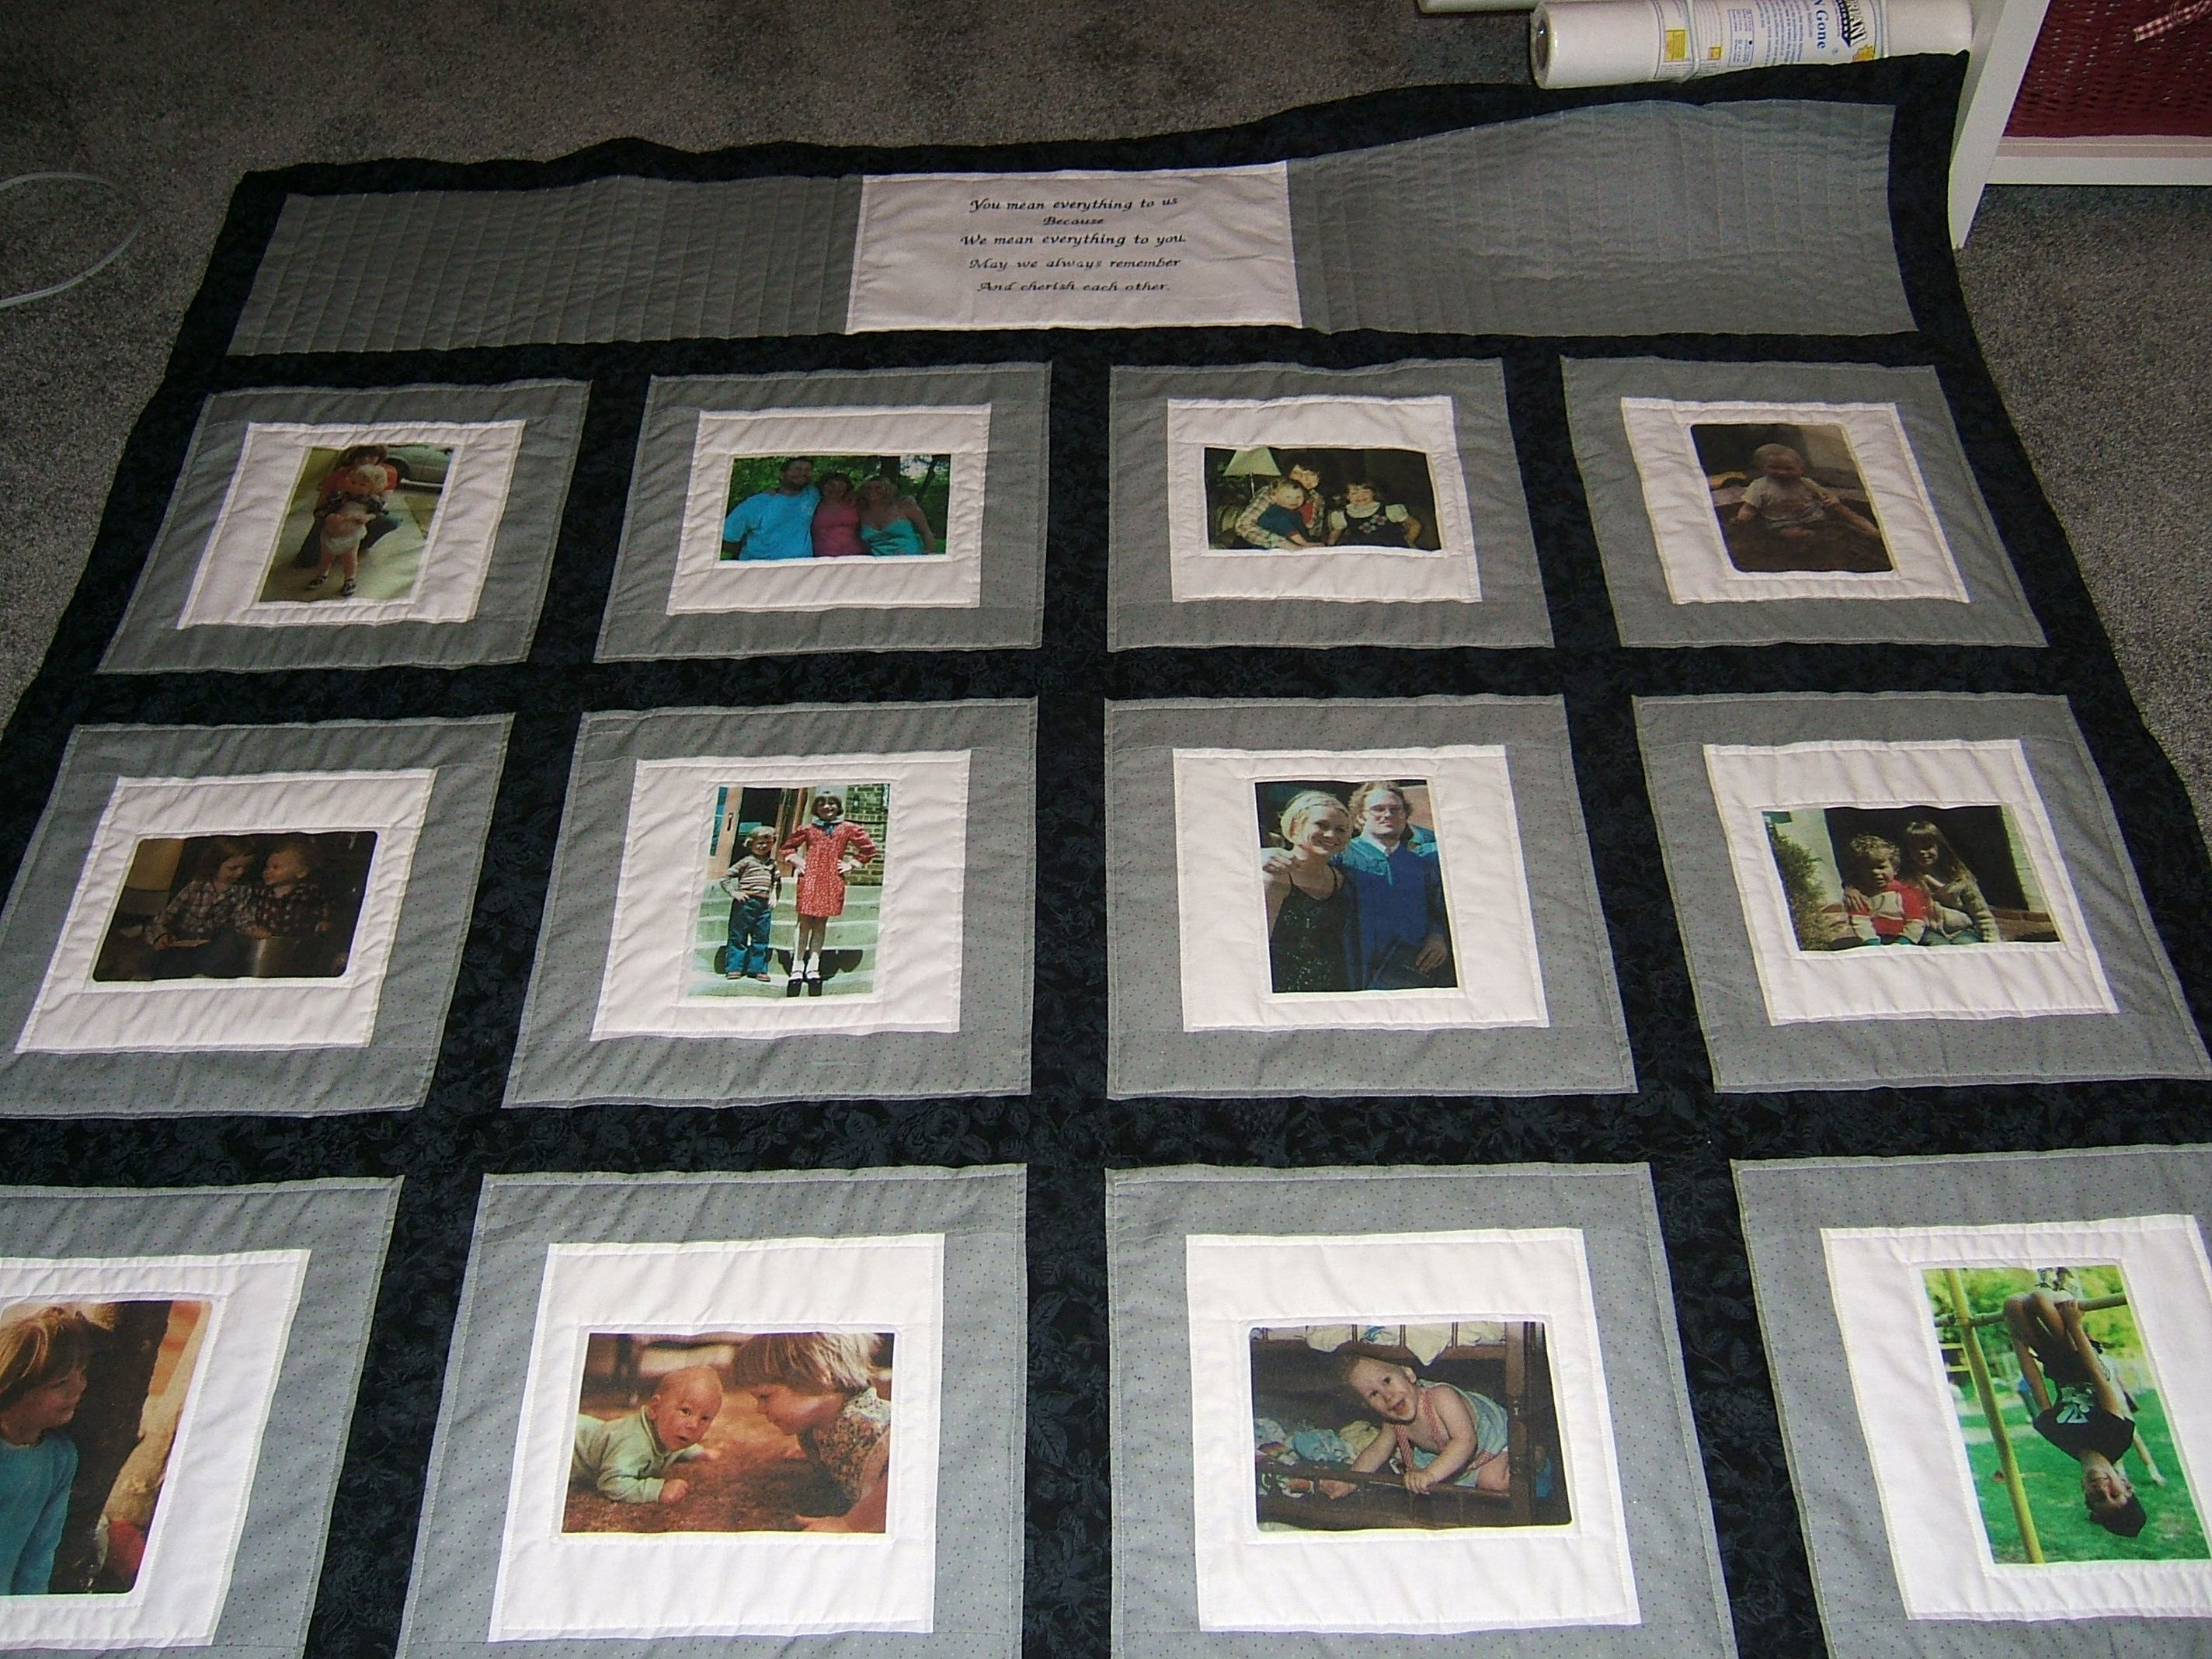 Baby Rooms by Nana. Mary Seibolt, Custom Embroidery and Quilting